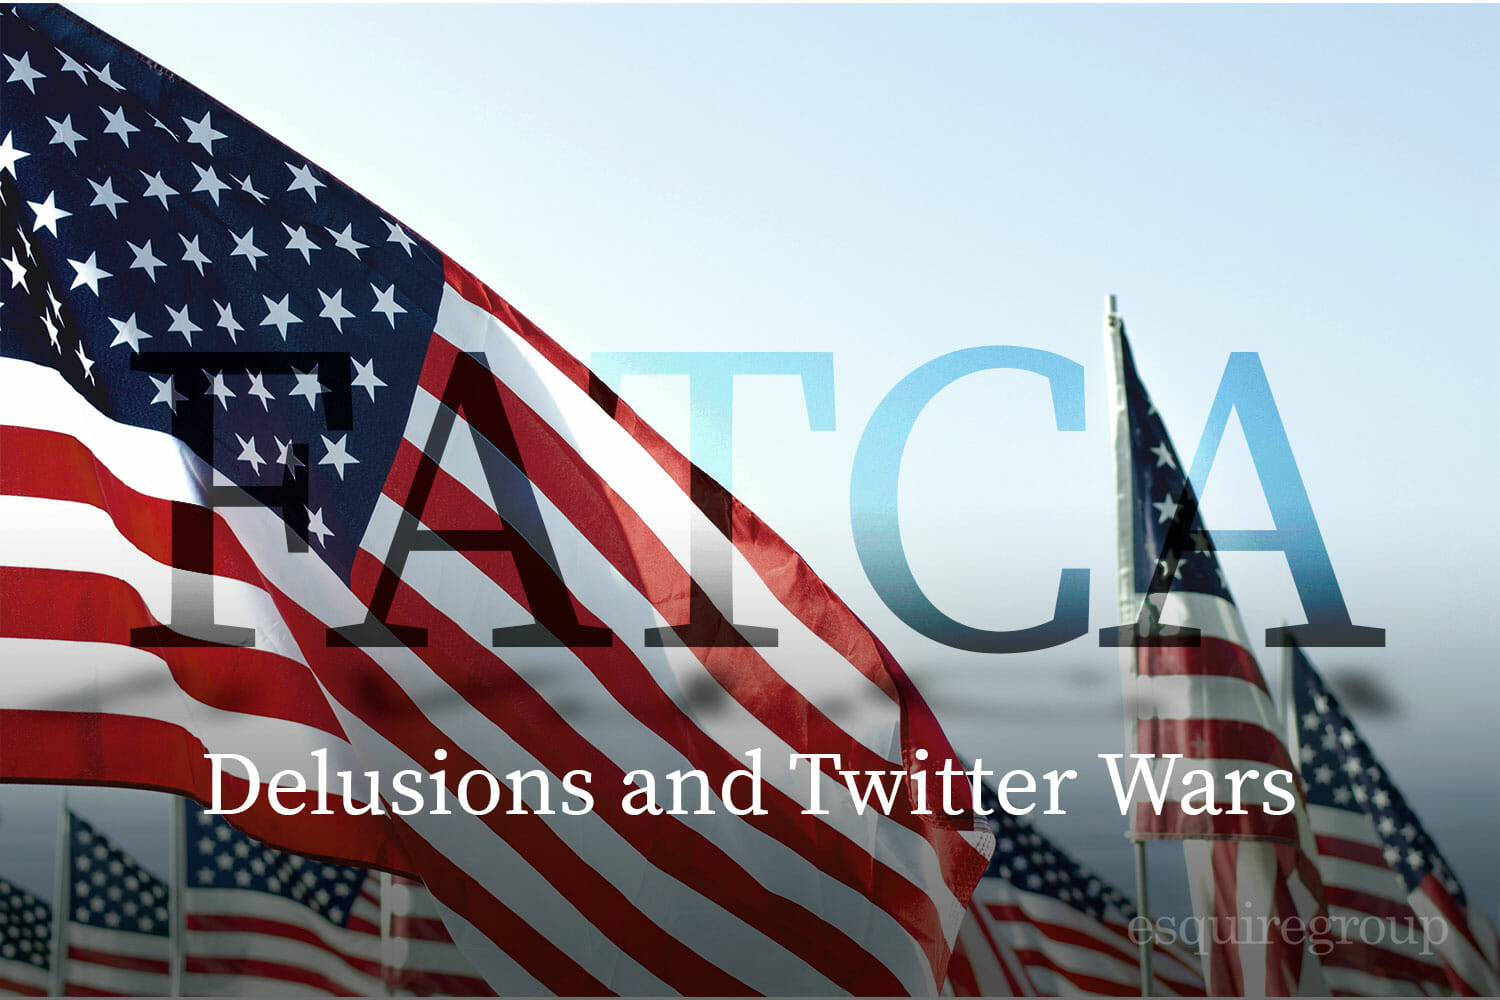 FATCA Delusions and Twitter Wars